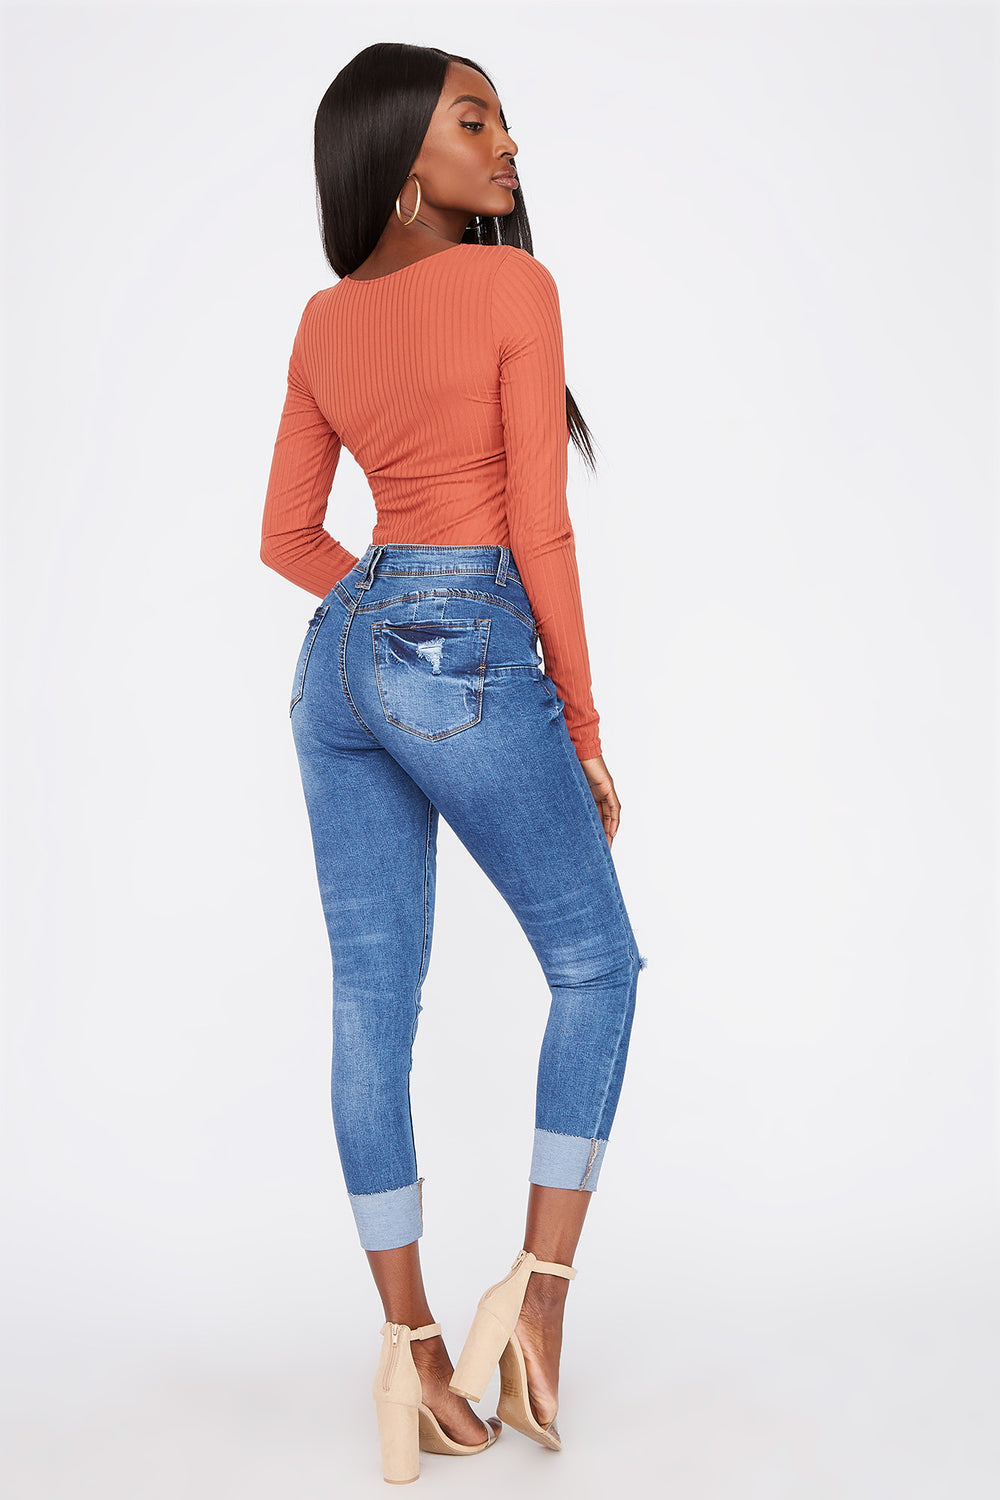 Butt, I Love You Distressed Push-Up Cuffed Jean Medium Blue